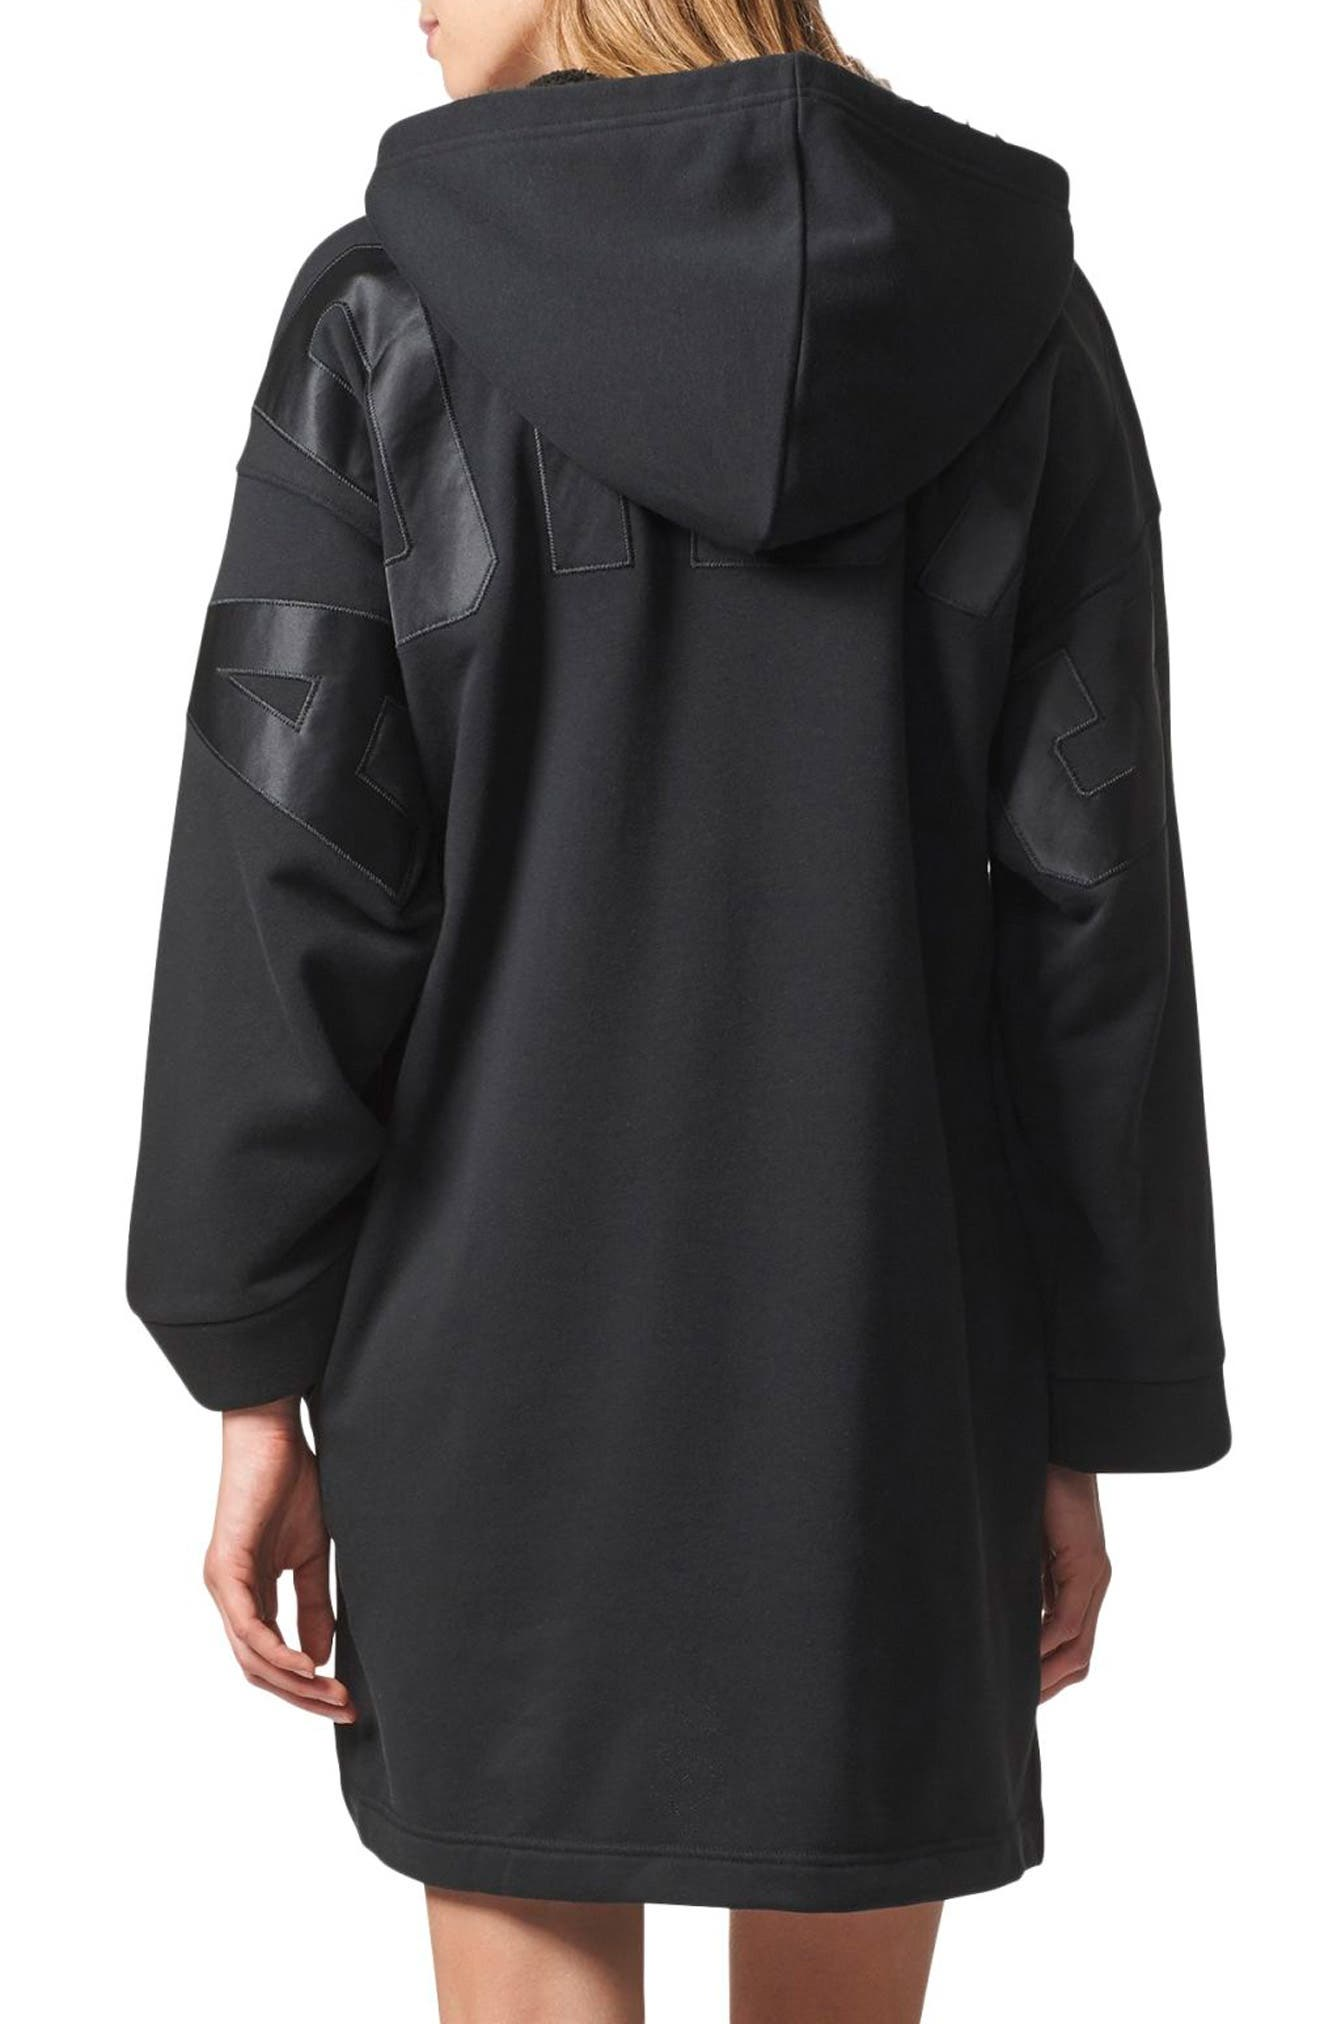 Originals Hooded French Terry Dress,                             Alternate thumbnail 2, color,                             Black